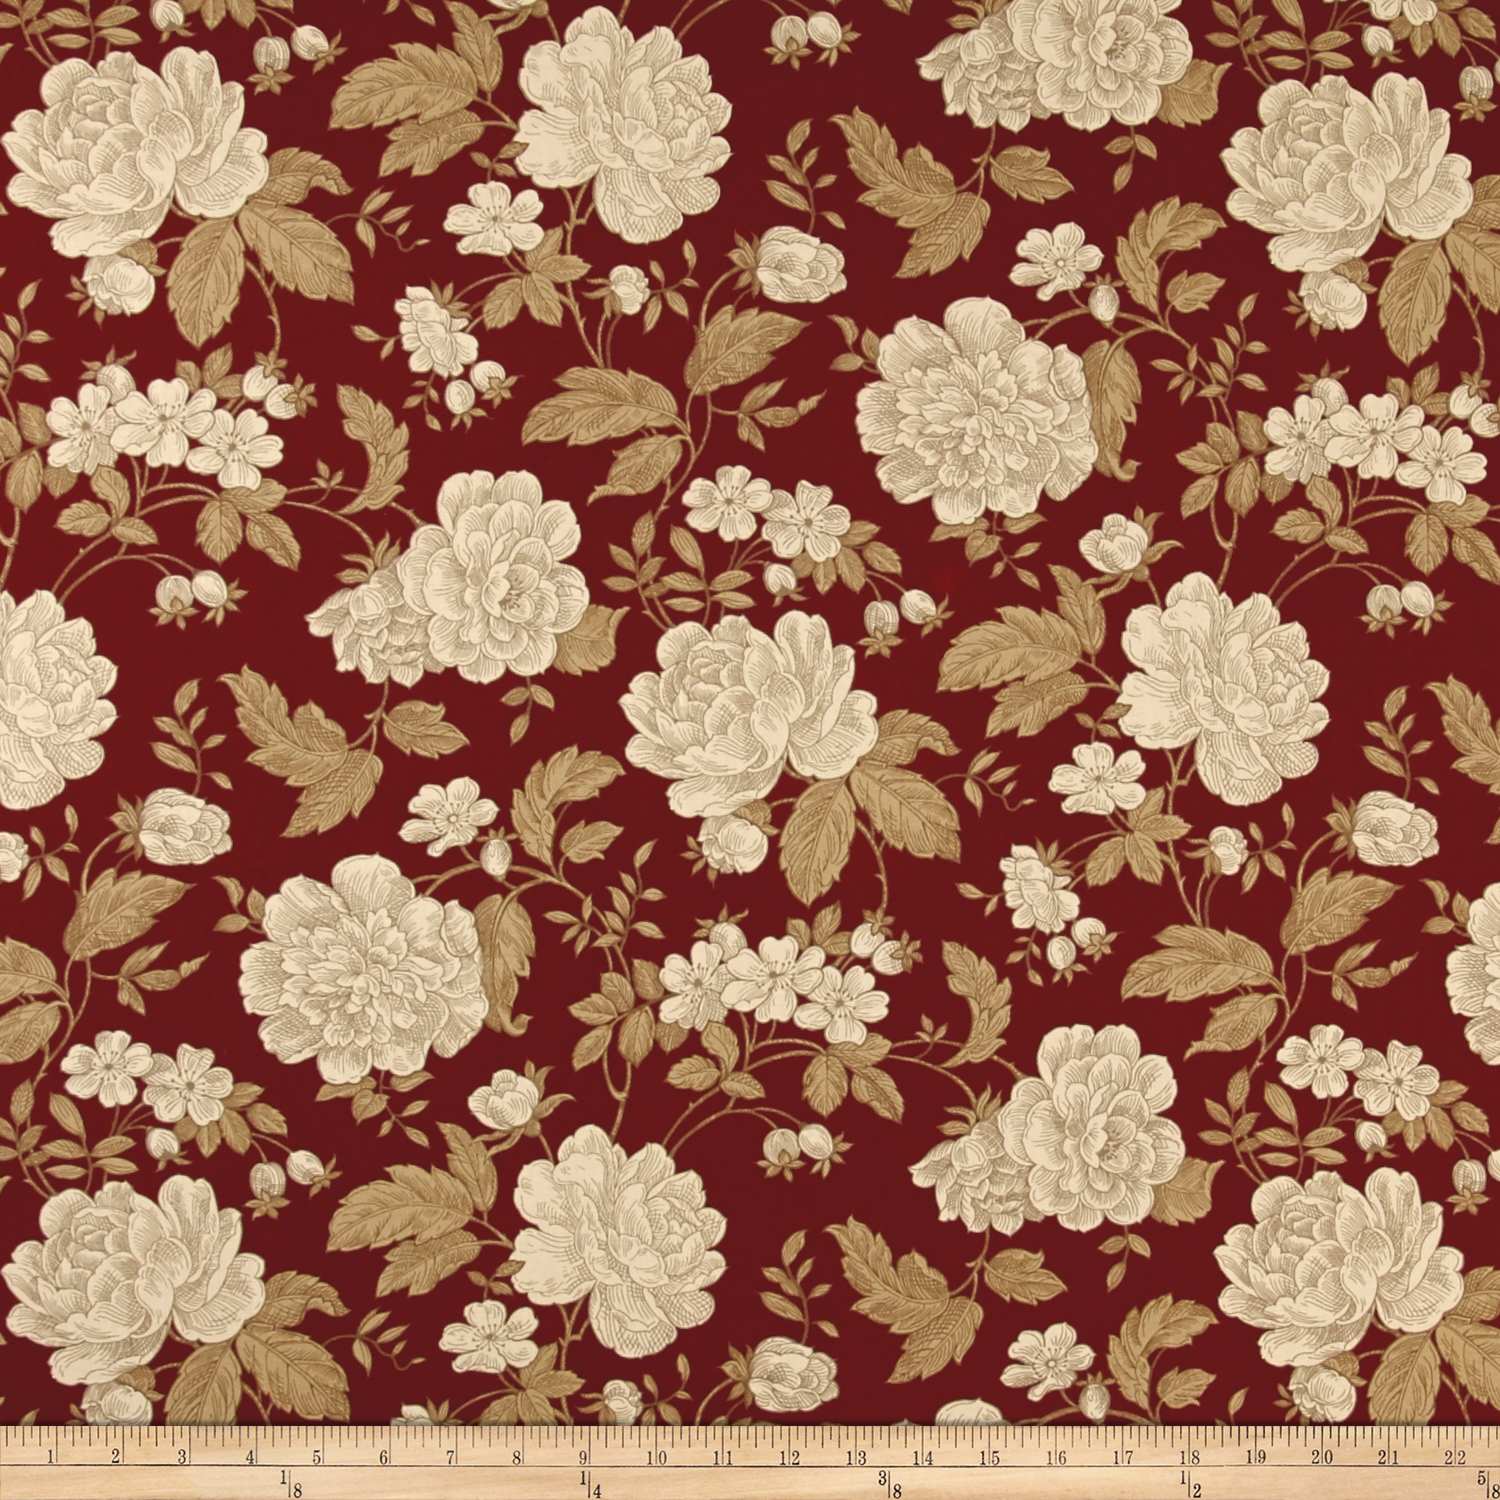 Ansley Home Decor Cotton Duck Floral Burgundy Cream